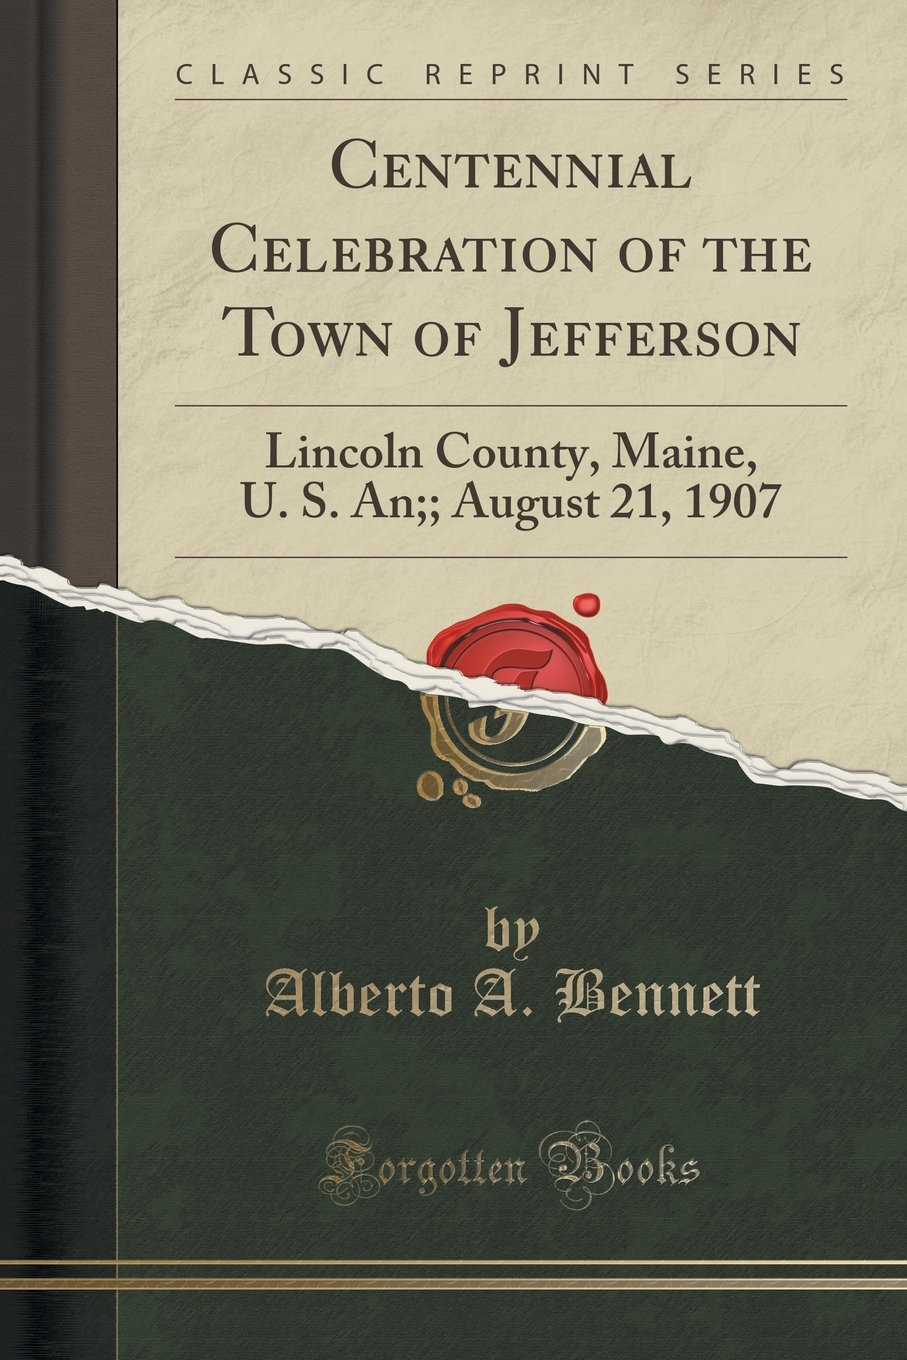 Centennial Celebration of the Town of Jefferson: Lincoln County, Maine, U. S. An; August 21, 1907 (Classic Reprint)